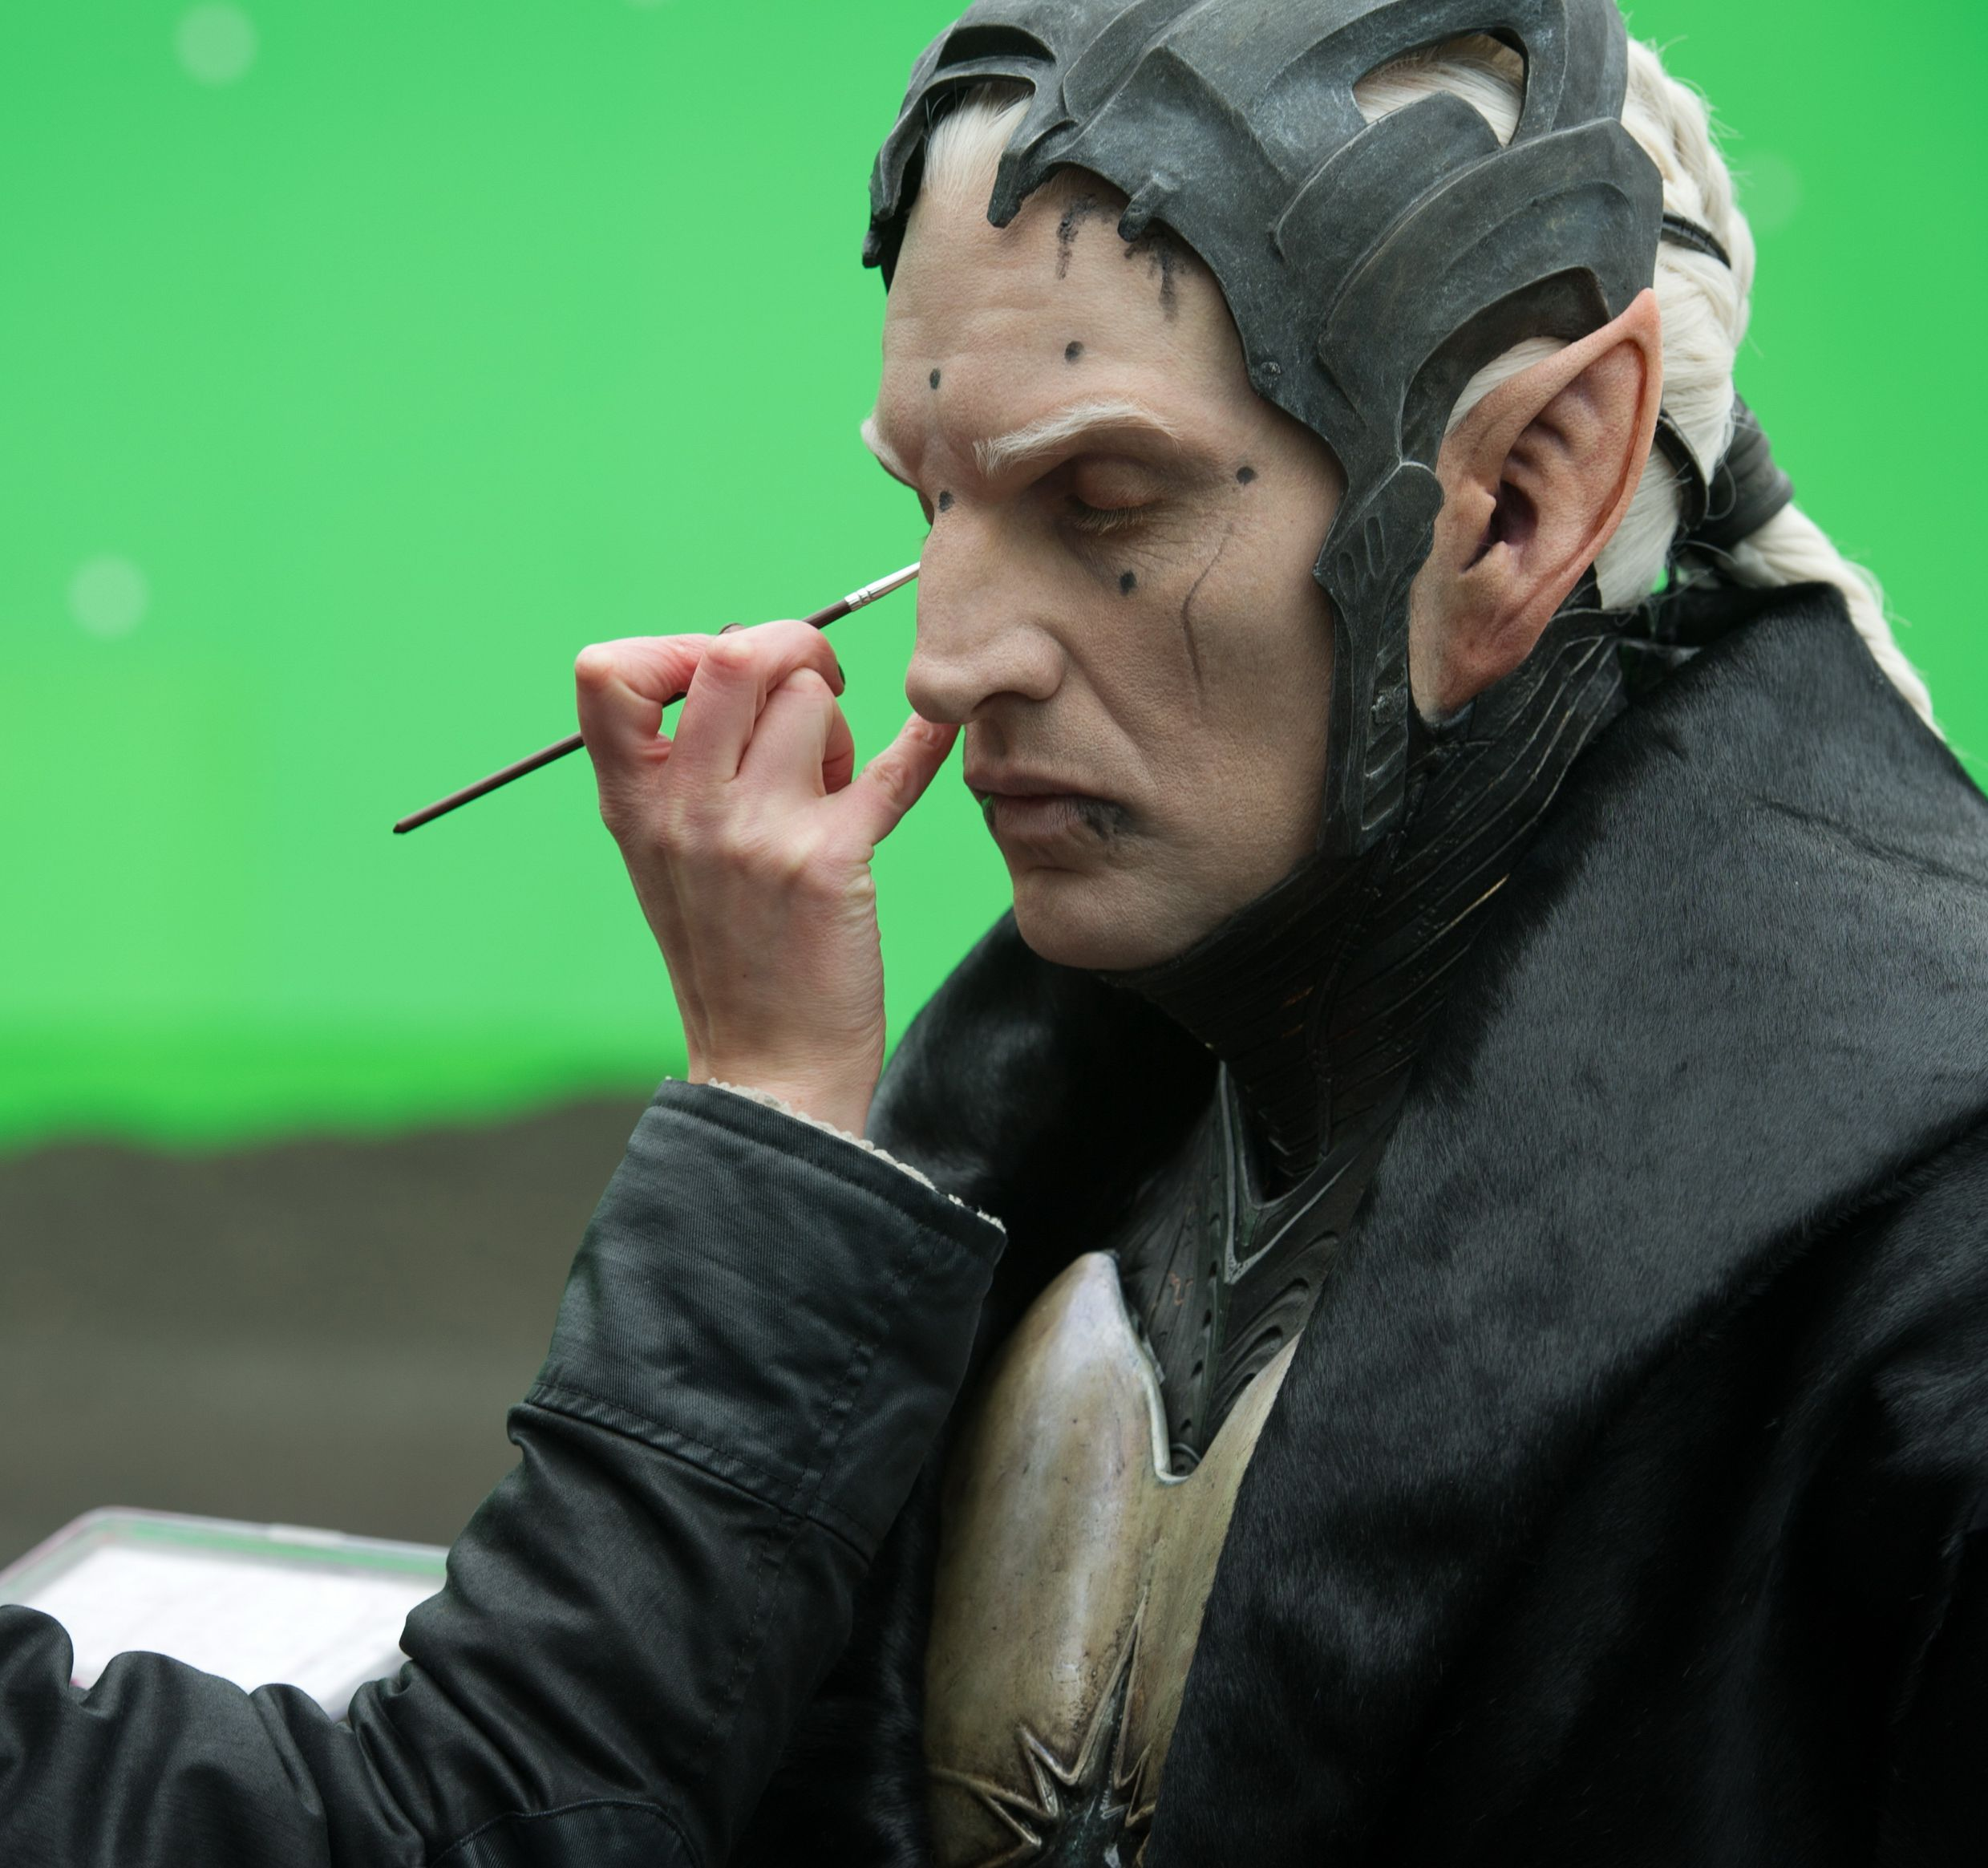 Making up the bad guy in Thor 2